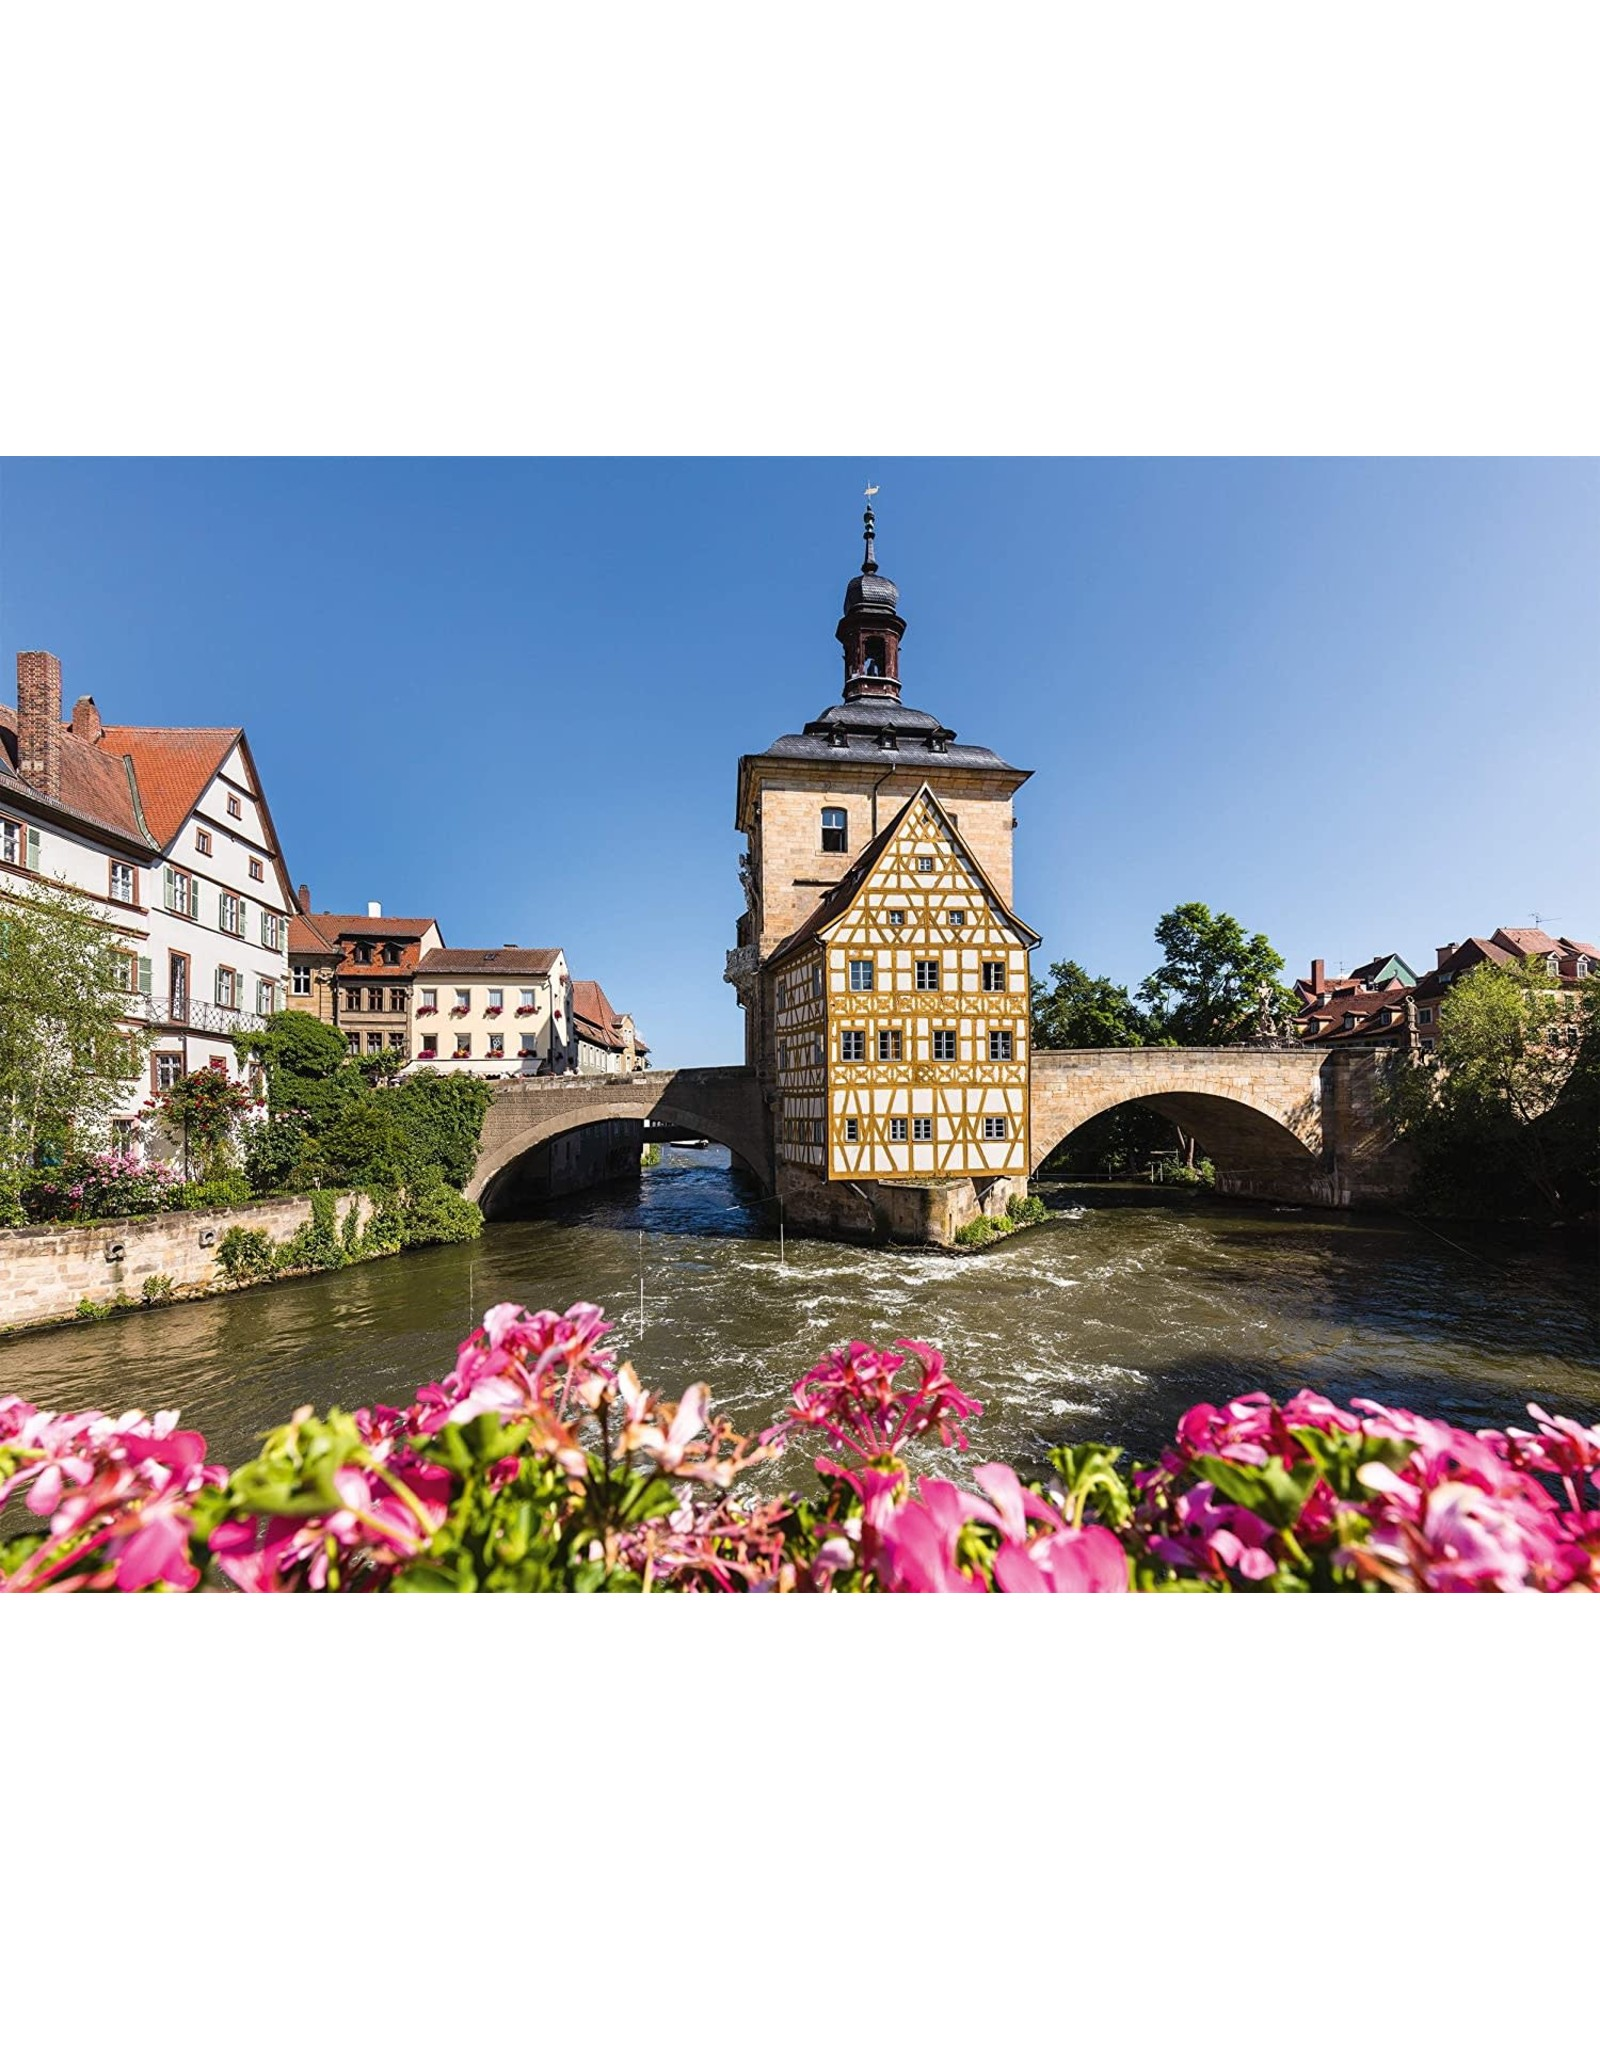 Schmidt 1000PC PUZZLE - BAMBERG, REGNITZ & OLD TOWN HALL